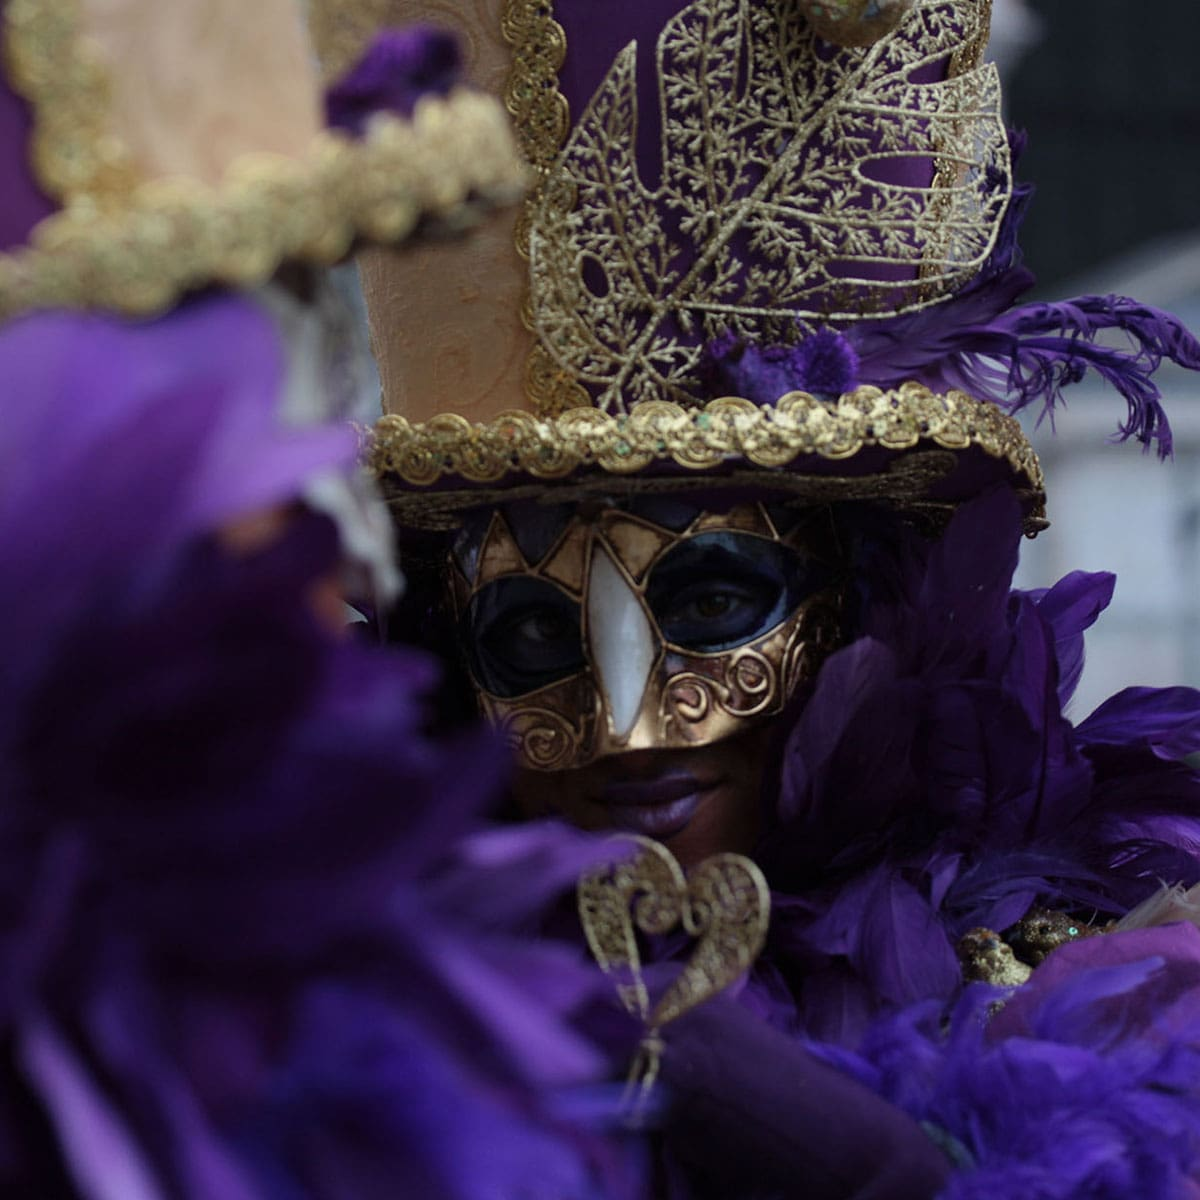 Image of person wearing purple and gold mardi gras mask in feathers